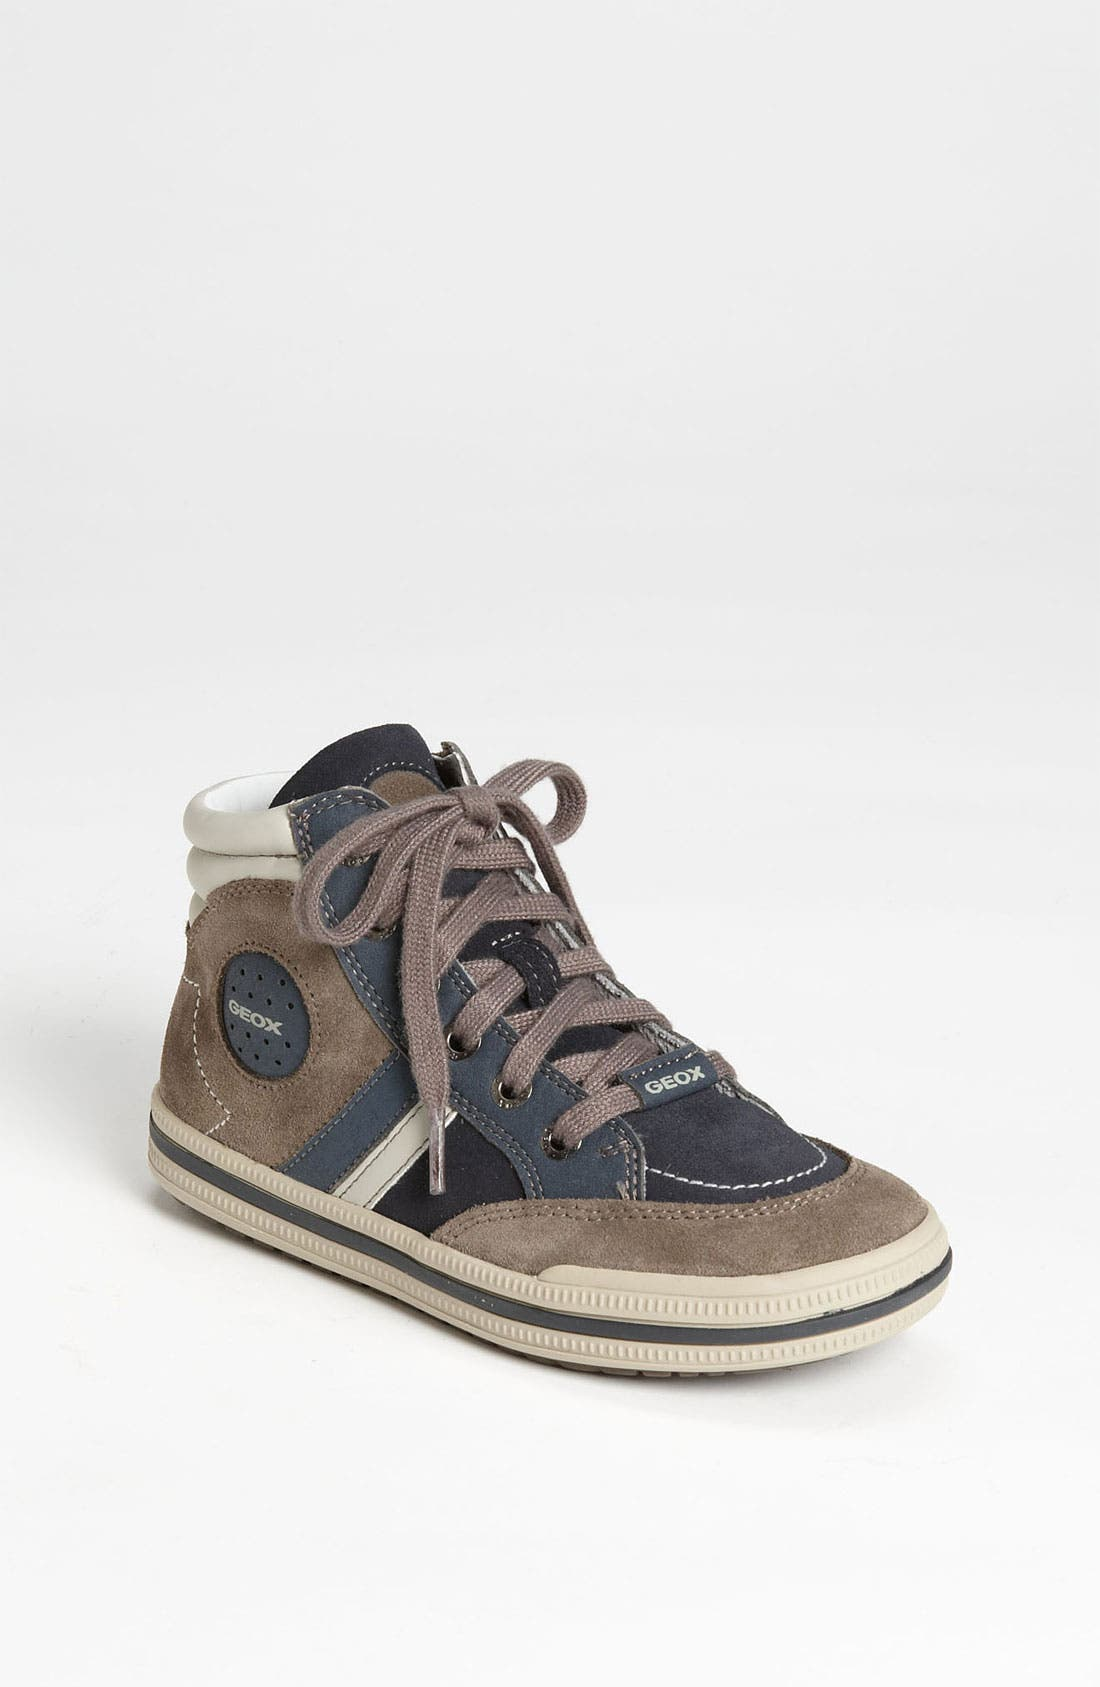 Main Image - Geox High Top Sneaker (Toddler, Little Kid & Big Kid)